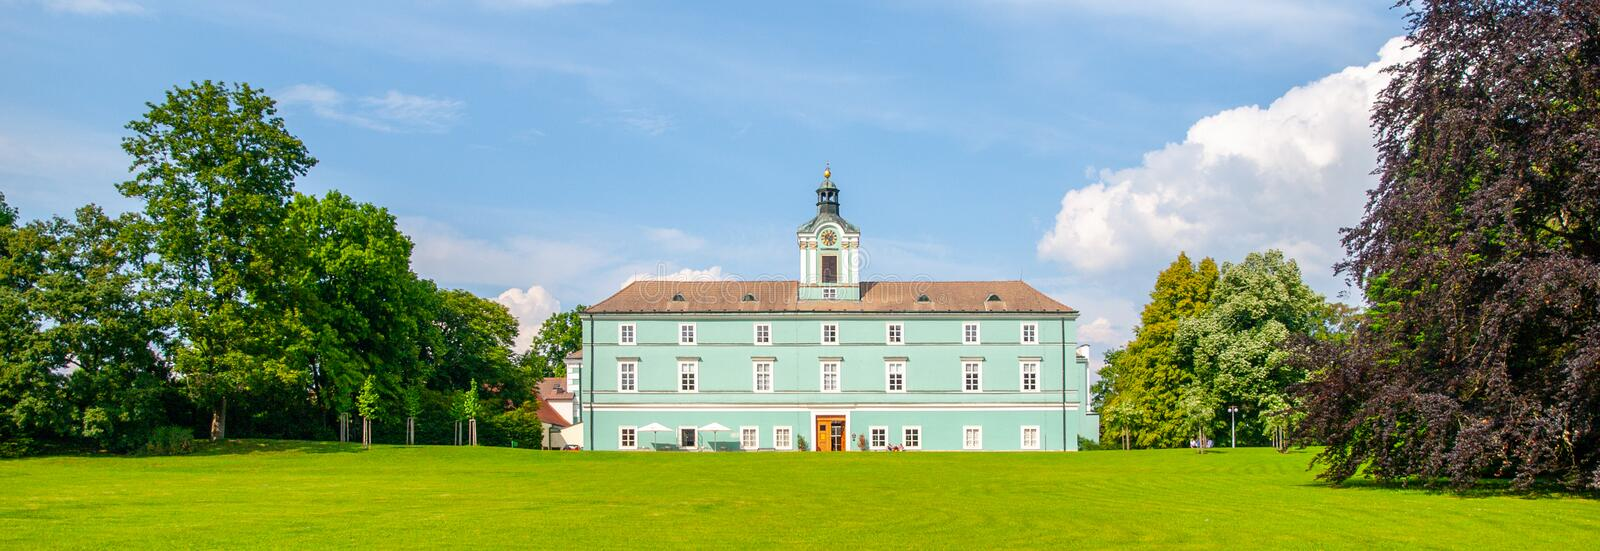 Park and renaissance chateau in Dacice, Czech Republic royalty free stock image